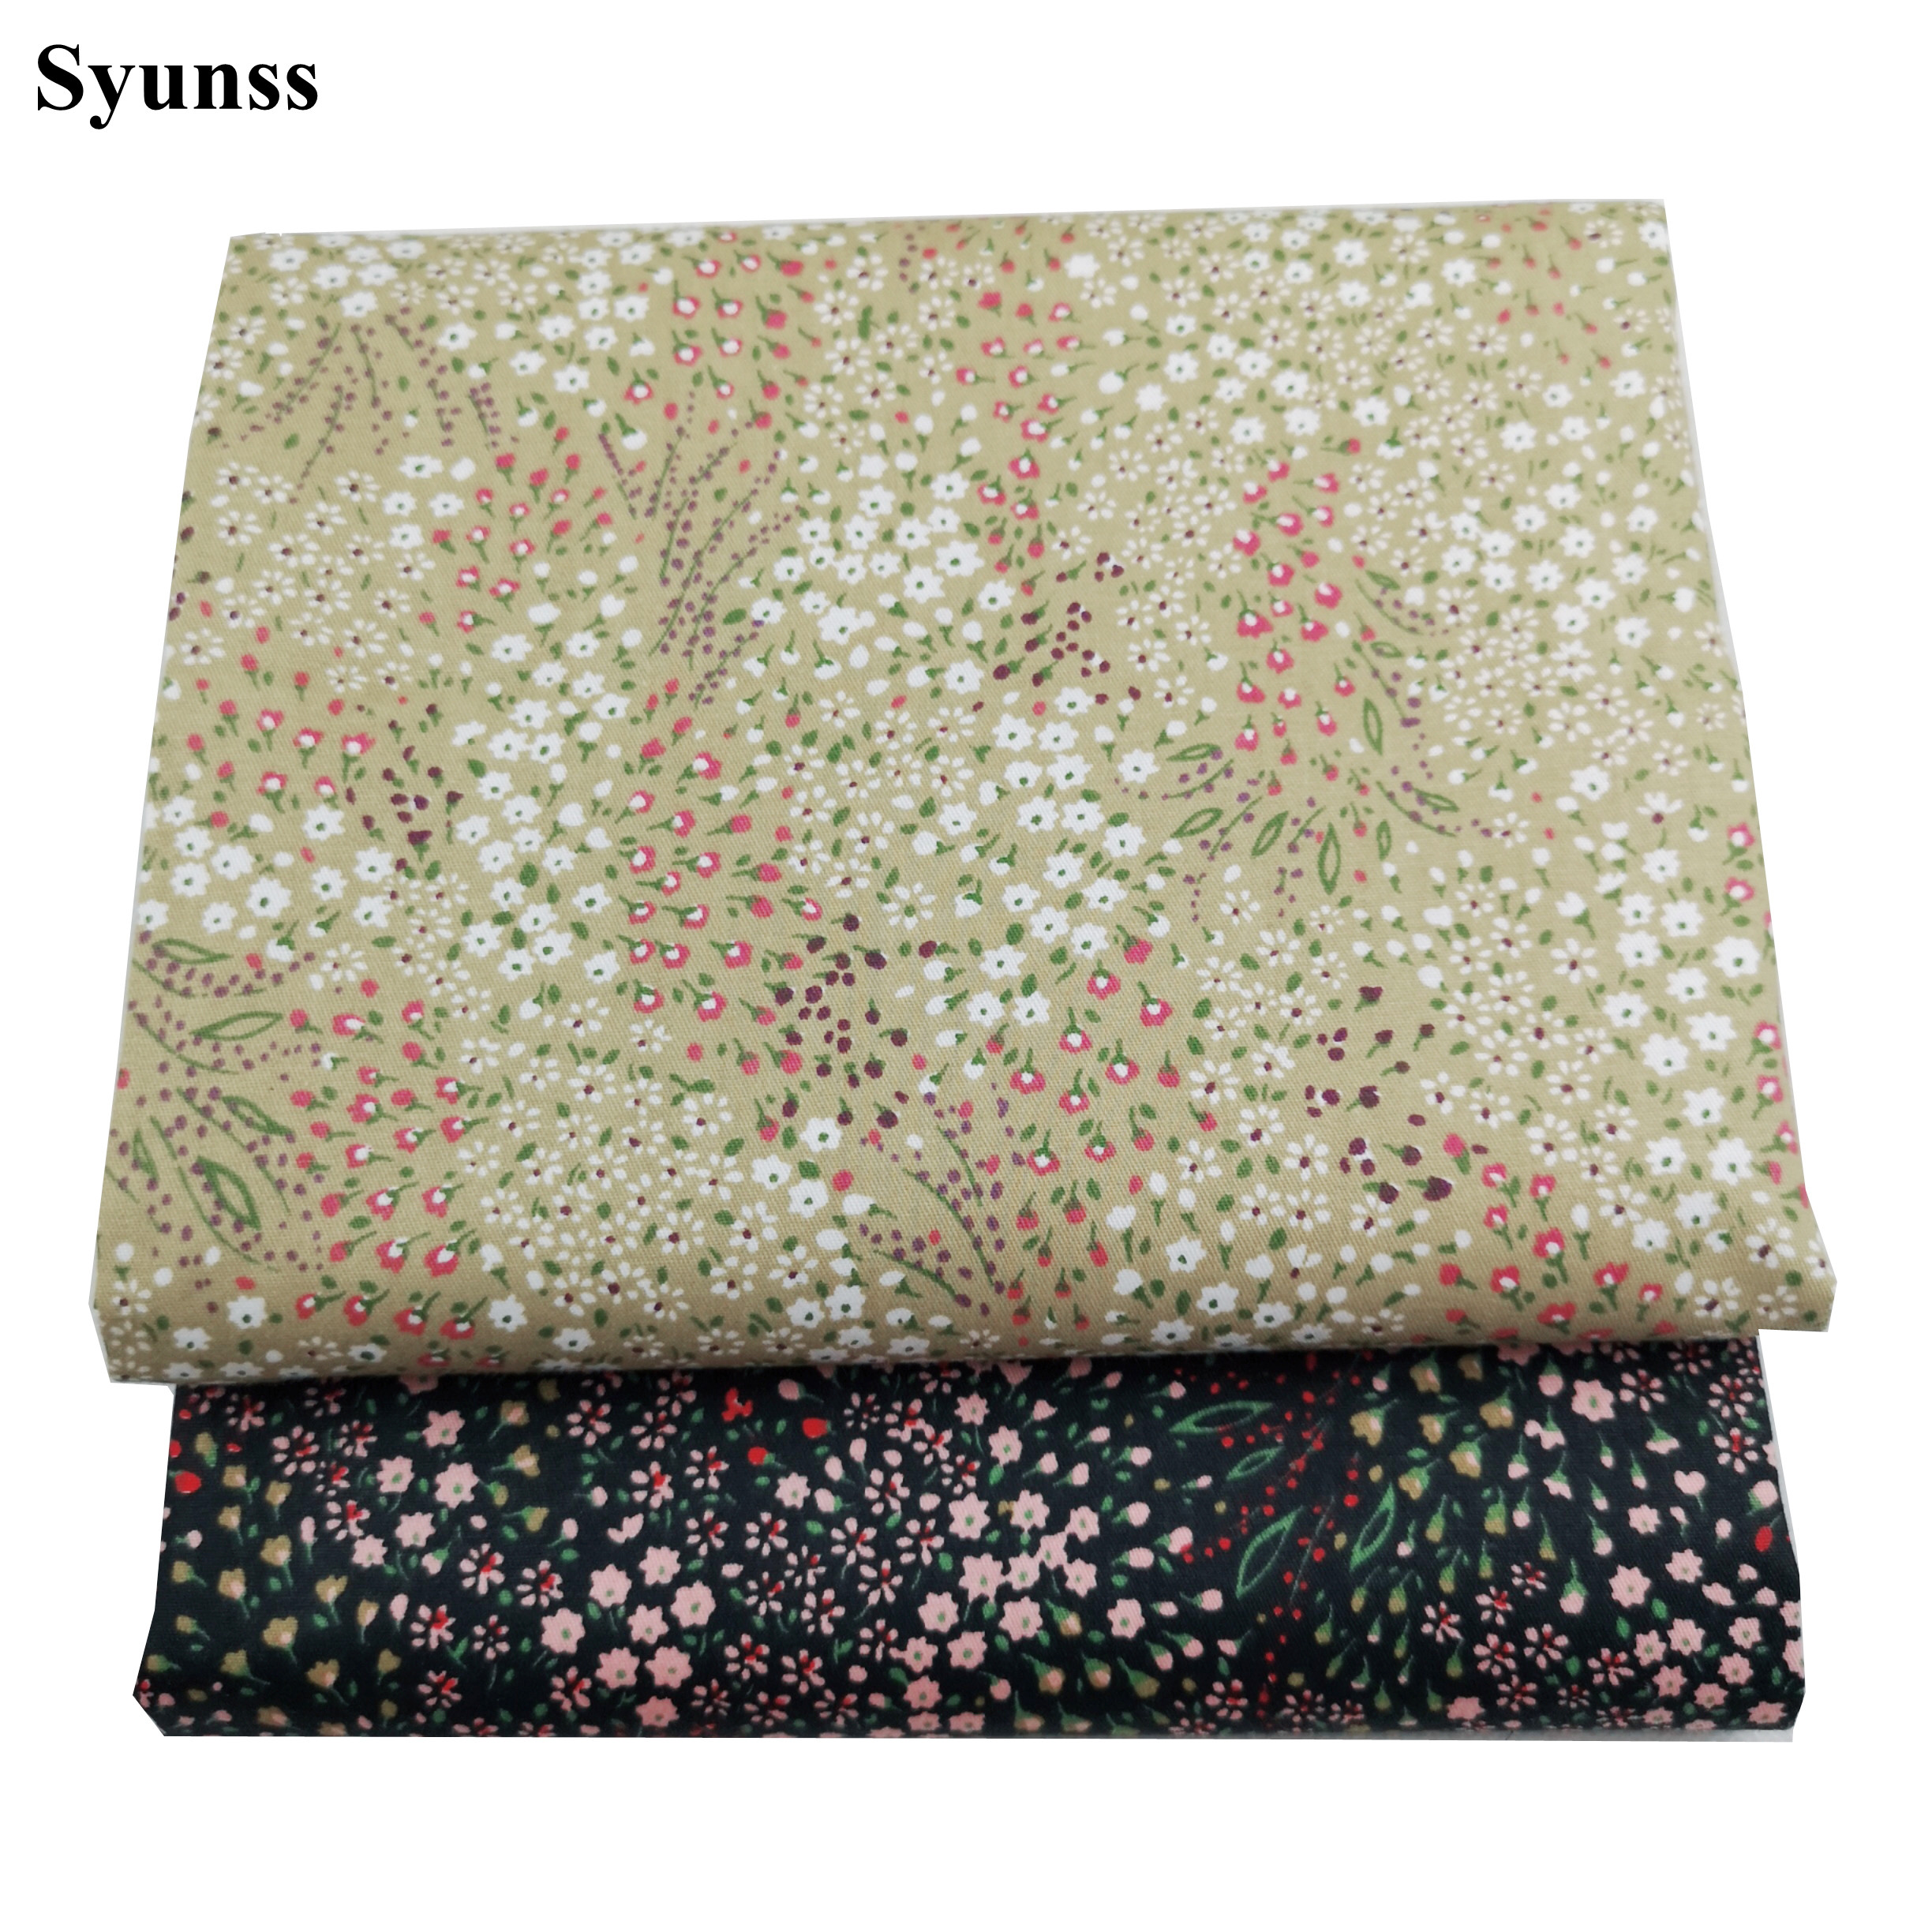 Syunss New Flower Printed Twill Cotton Fabric DIY Tissue Patchwork Telas Sewing Baby Toy Bedding Quilting Tecido The Cloth